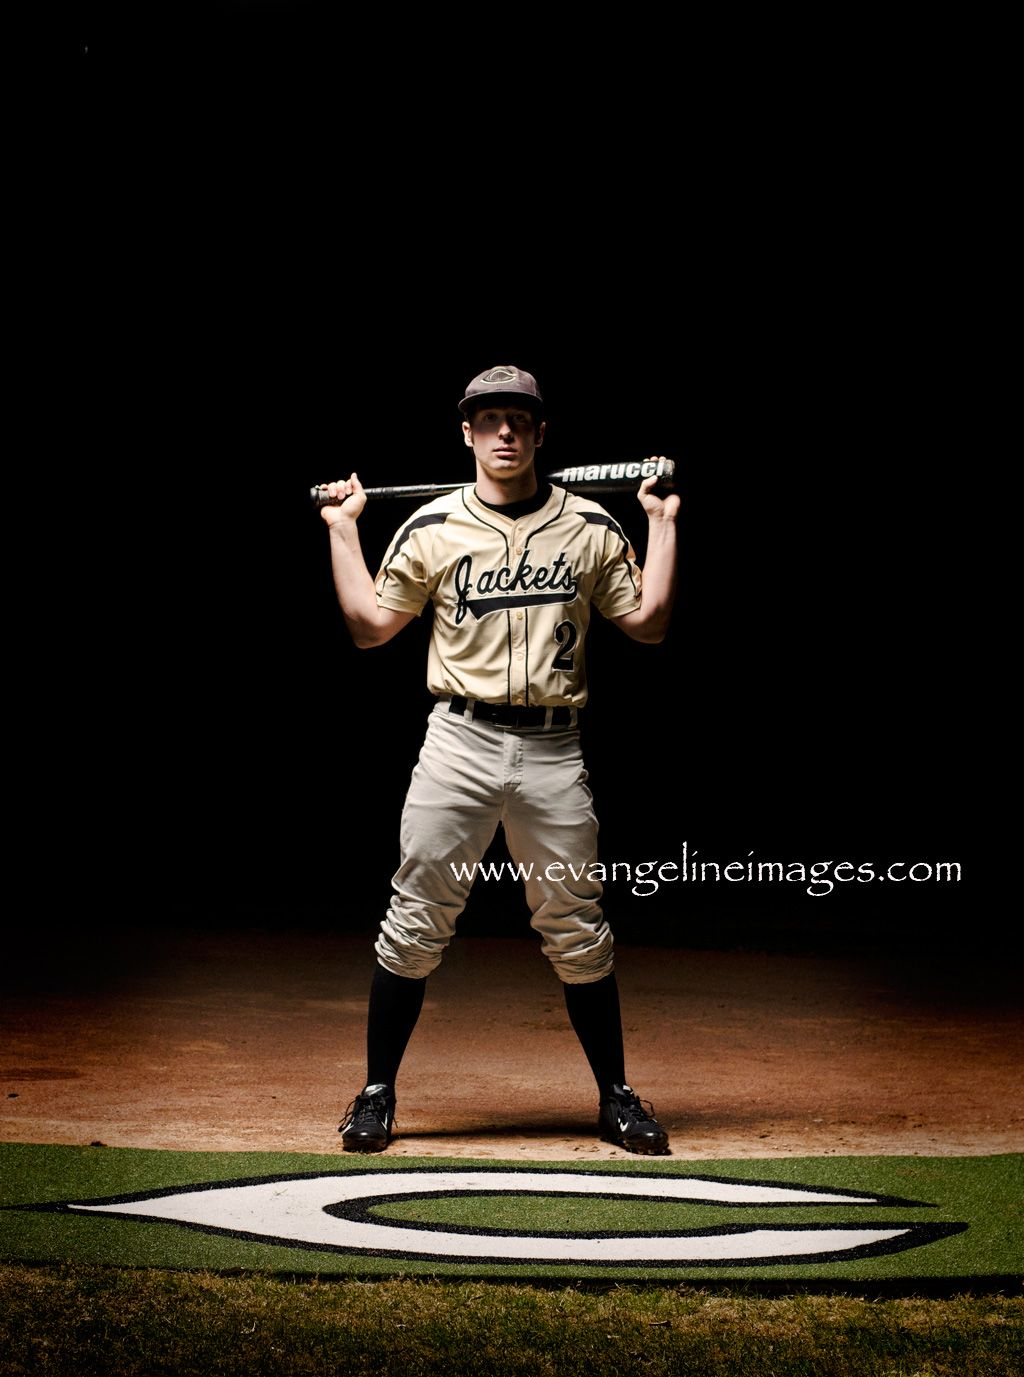 Senior Boy Baseball Pose Night Photography Noelitoflow Nature Www Instagram Co With Images Baseball Senior Pictures Senior Boy Photography Senior Pictures Poses